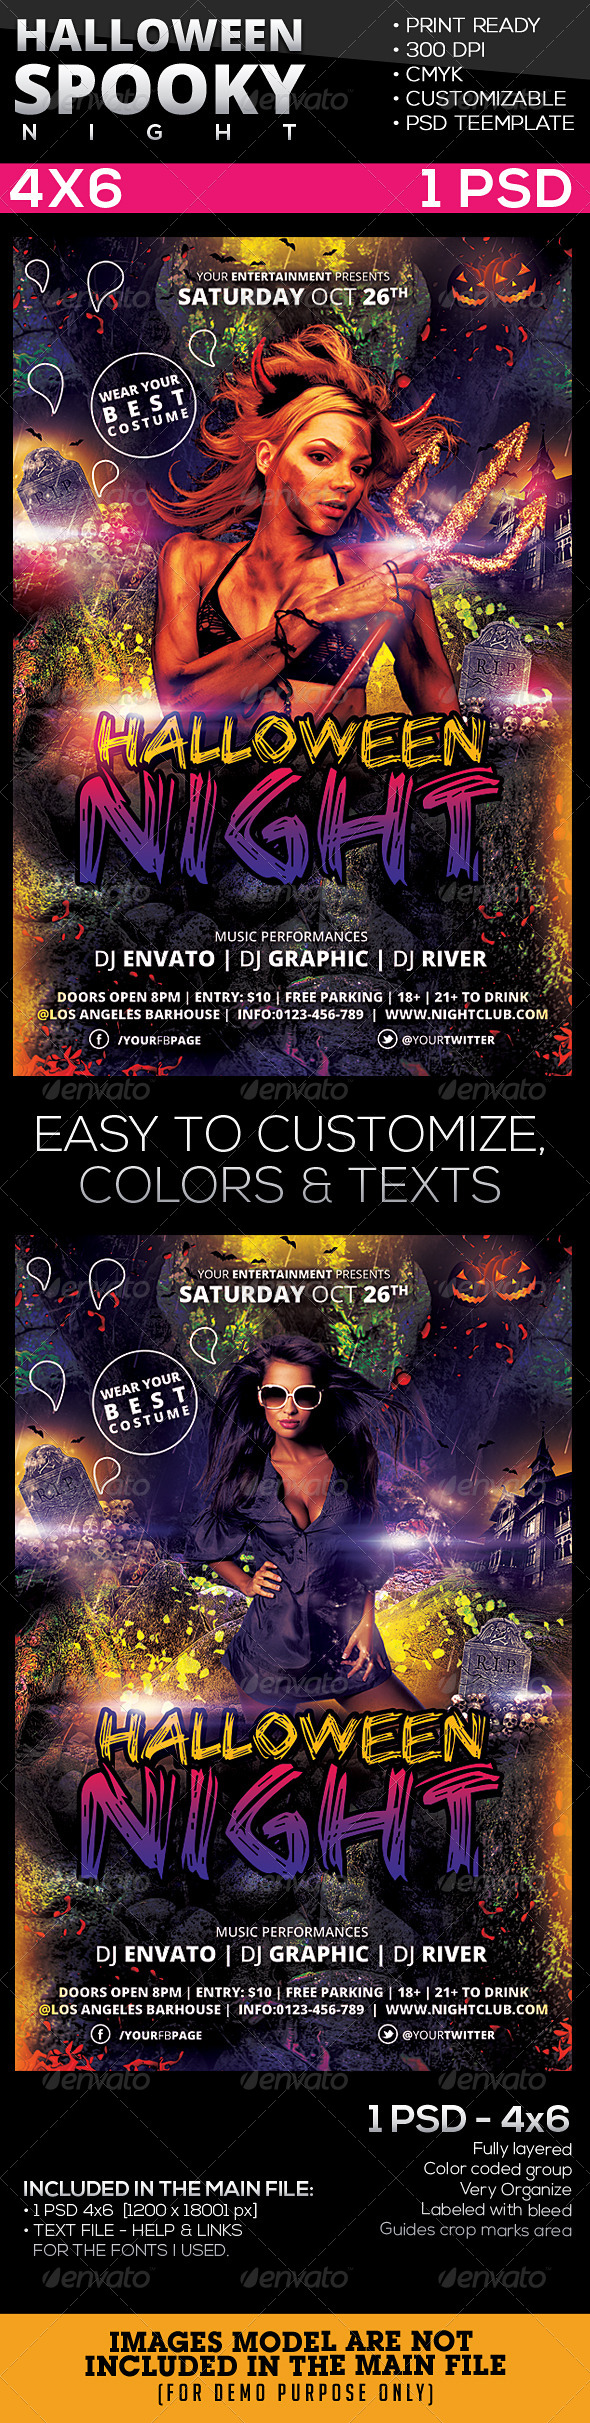 Spooky | Halloween Night Flyer Template - Holidays Events